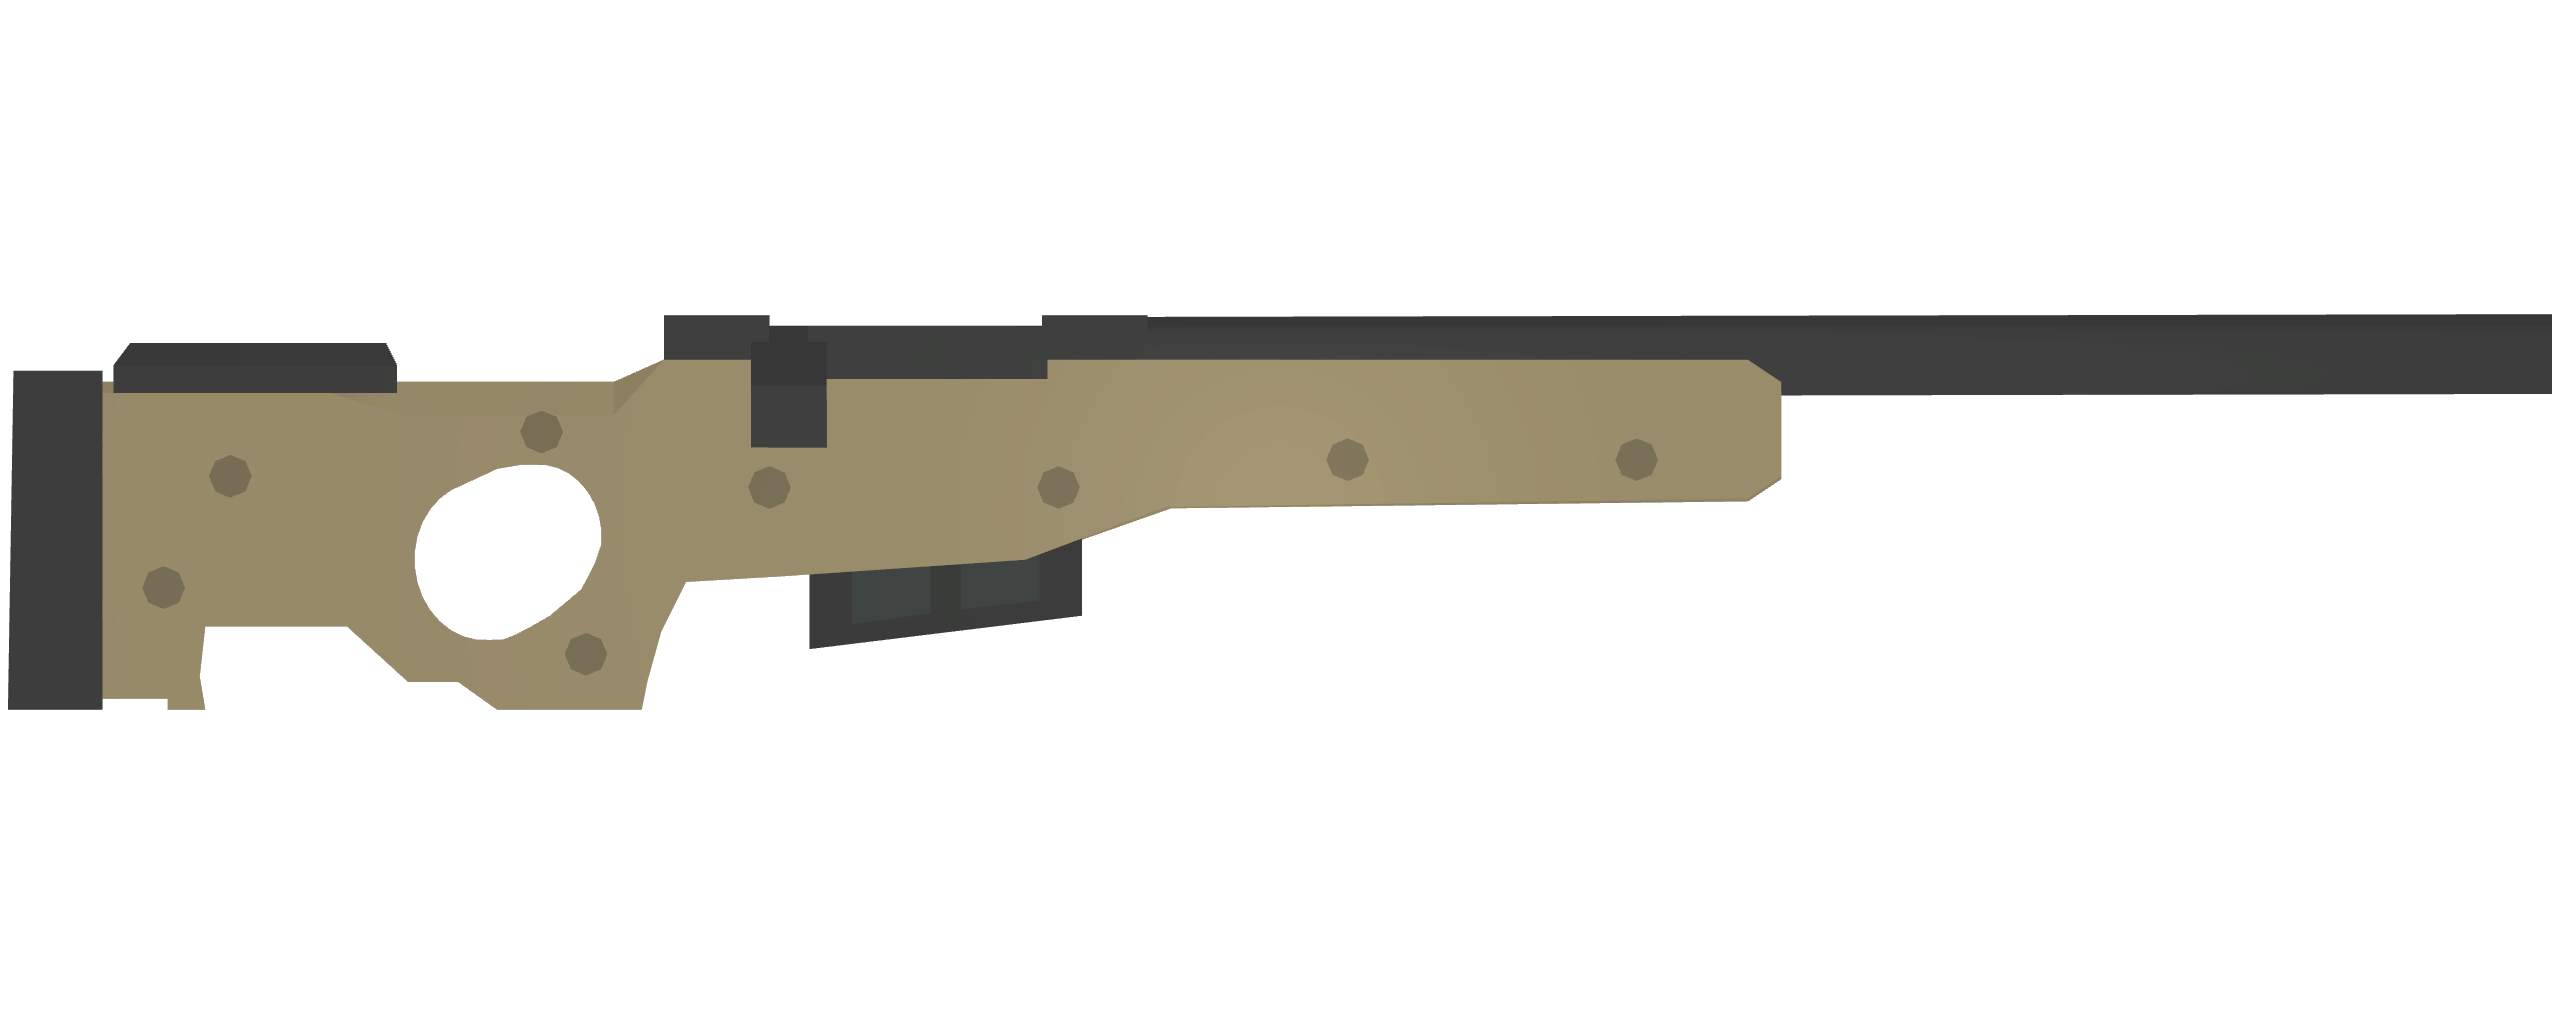 Unturned Uncreated Warfare Mods & All ID List + Attachments - Neutral Weapons - DBC5286